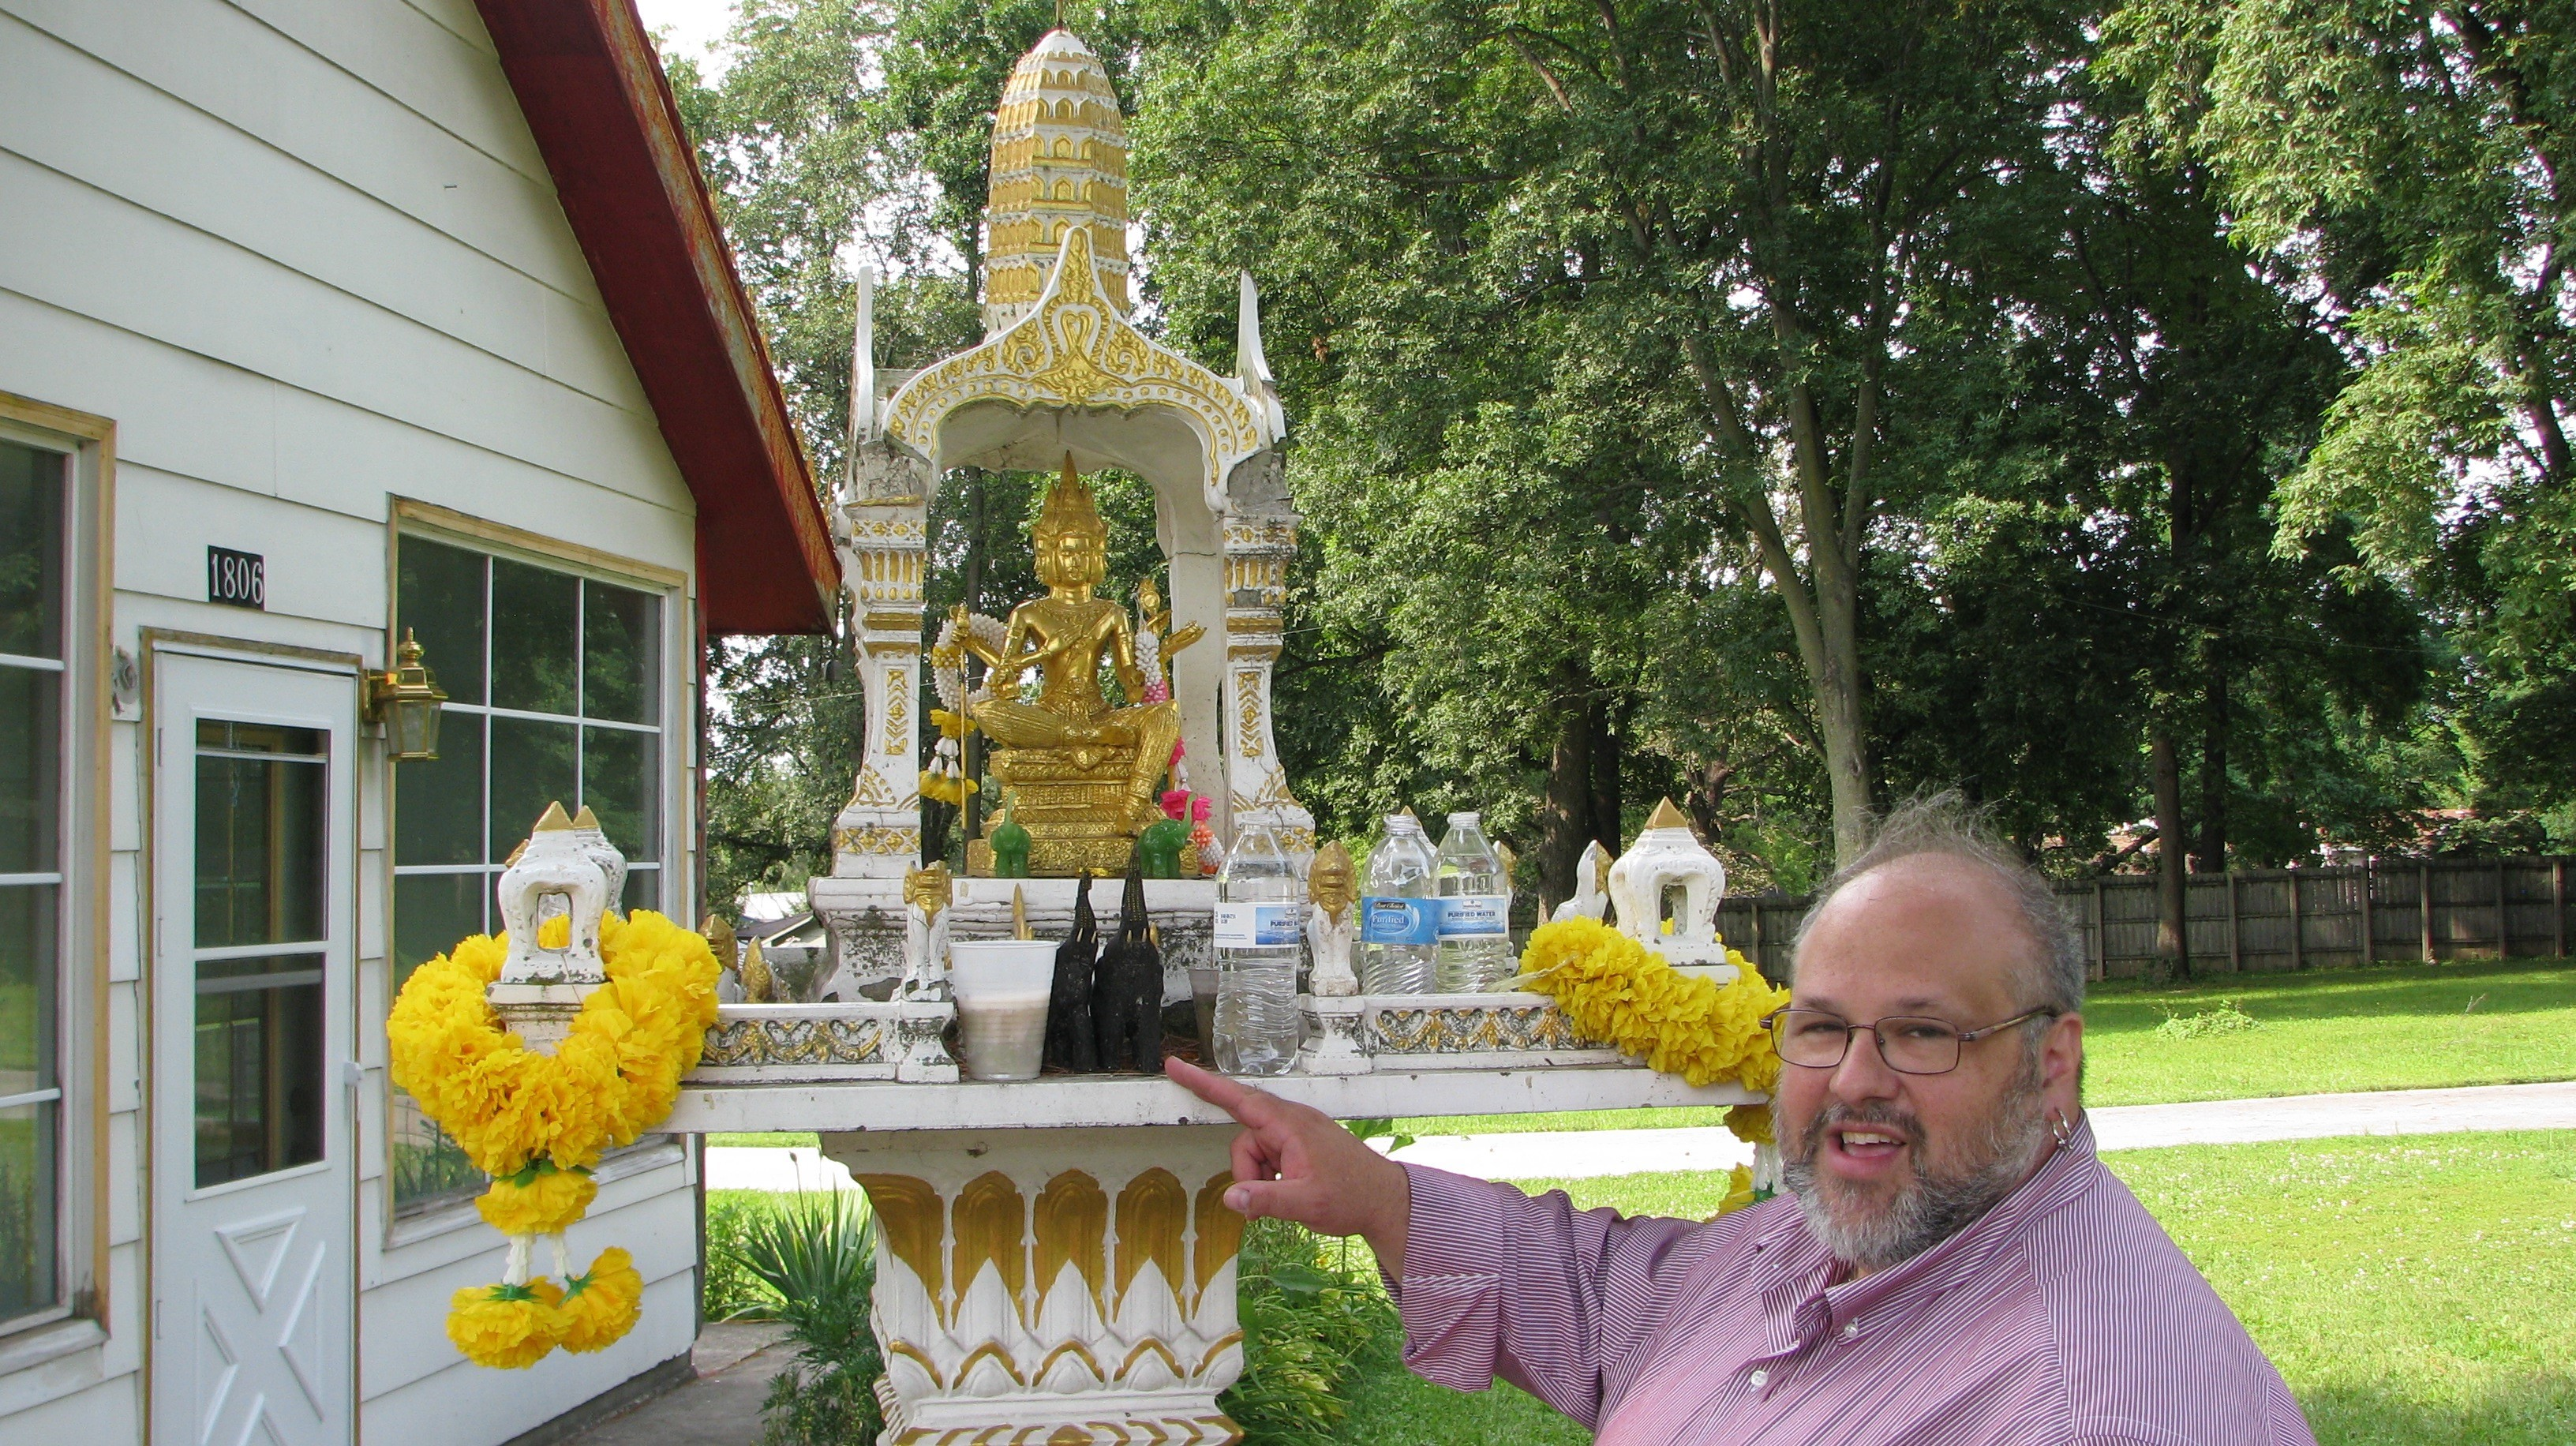 Dr. Christopher W. Chase discusses votive offerings left at a small shrine at Wat Lao Buddhavas, a Laotian Buddhist temple in Des Moines, IA.